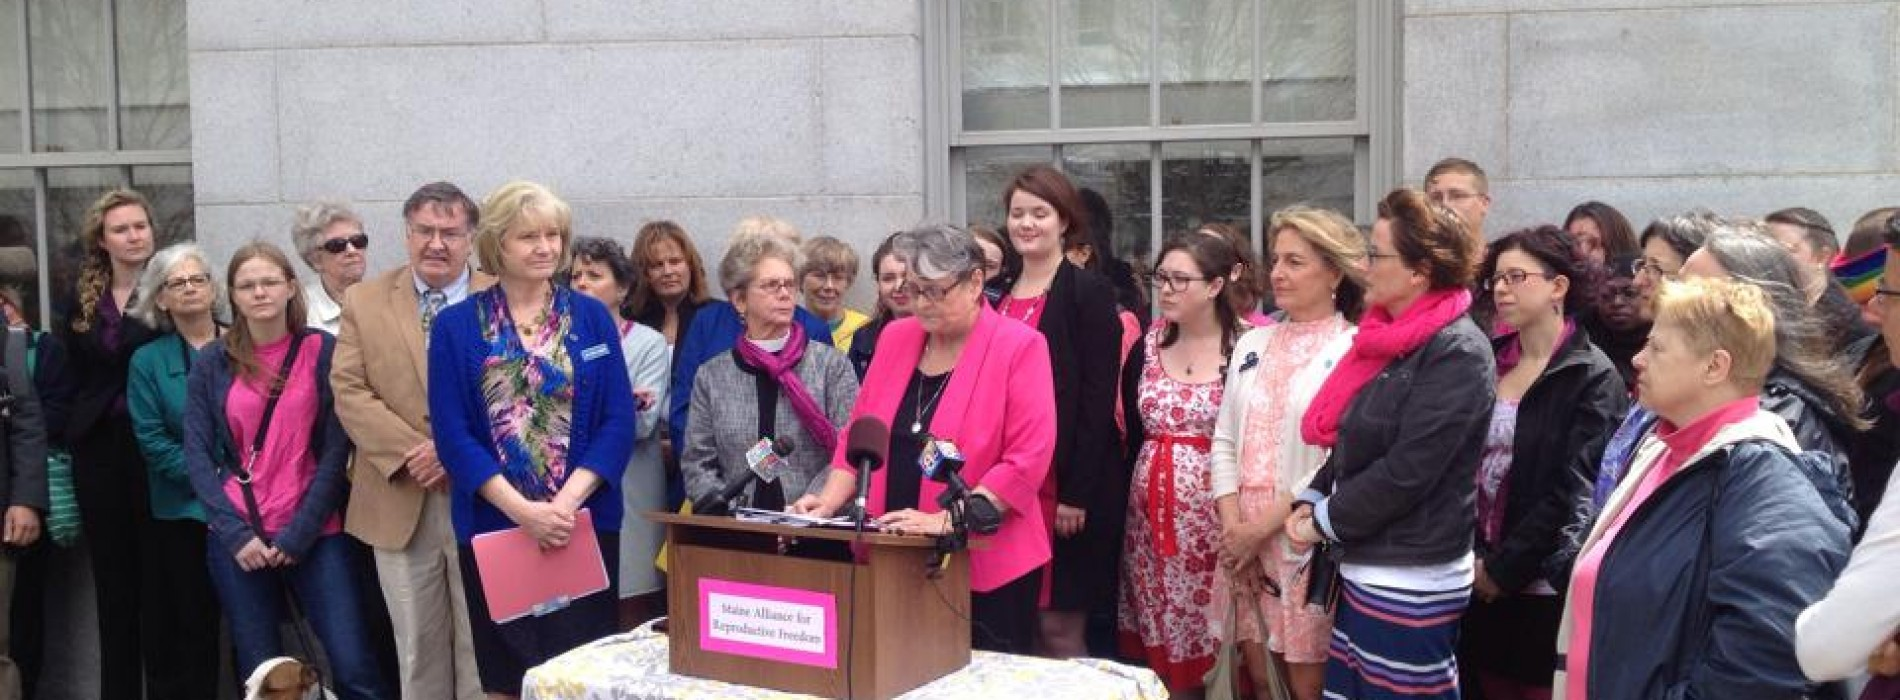 Will Maine legislators stand with Maine women?